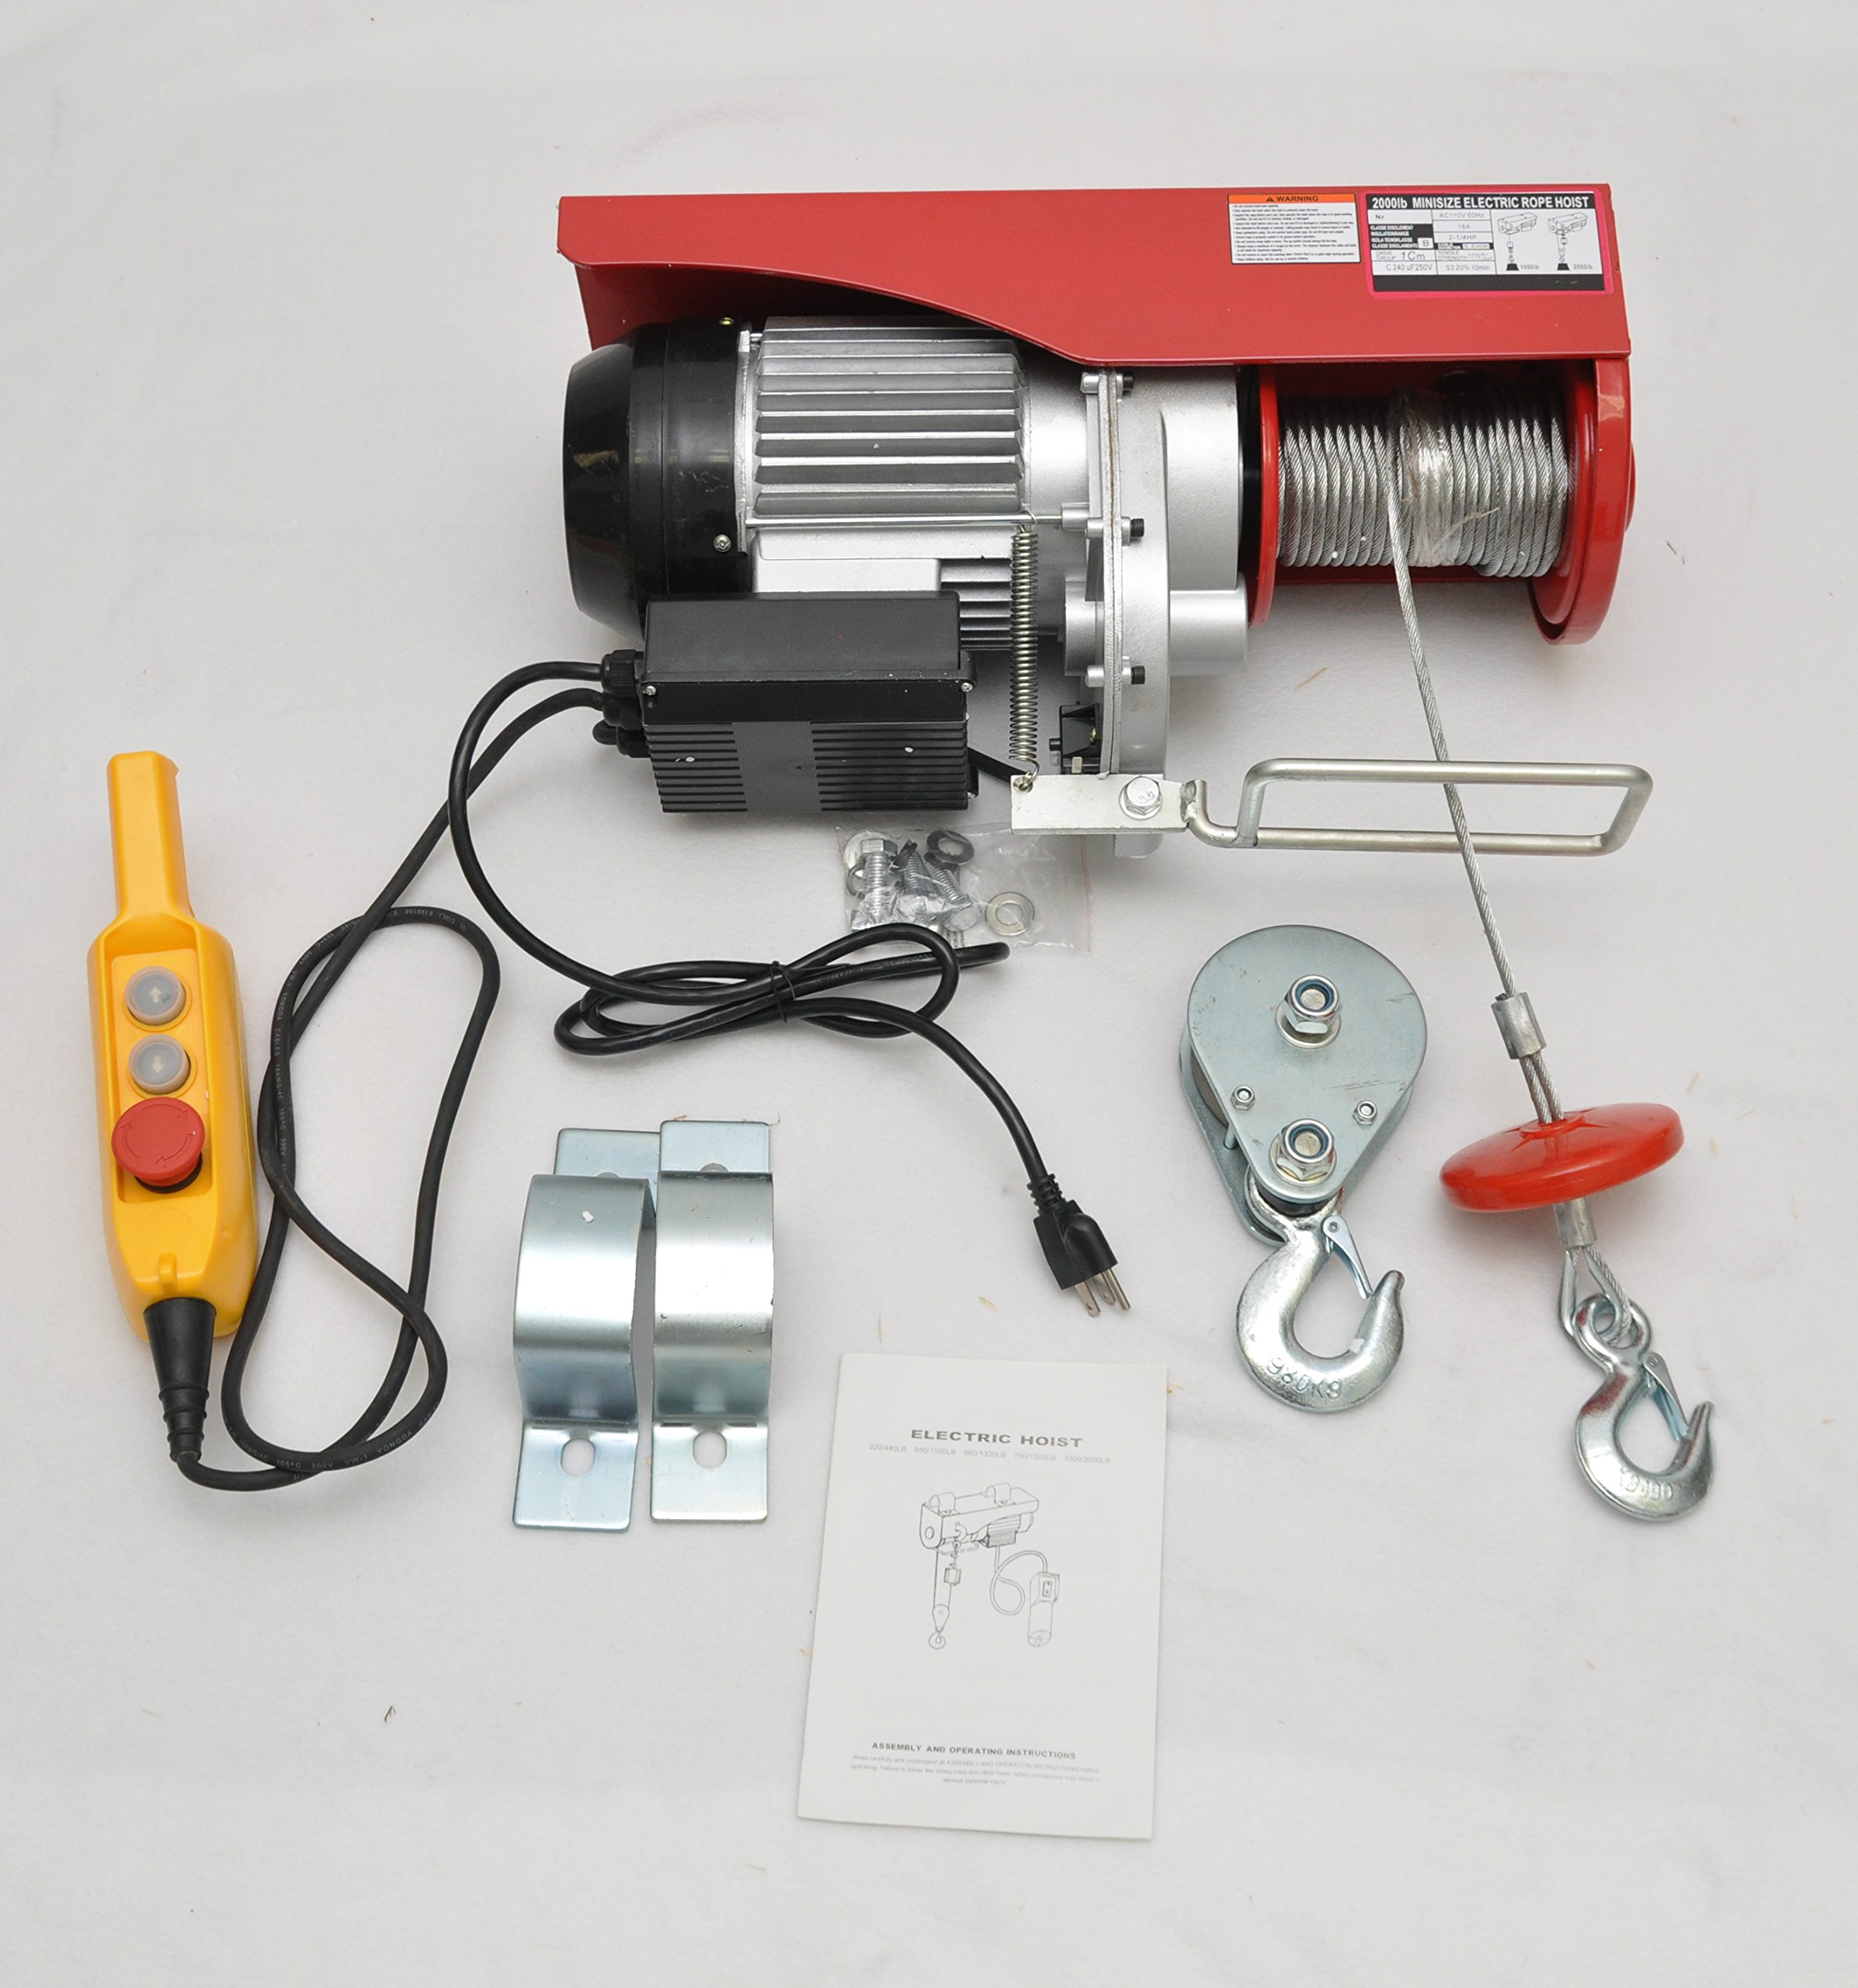 Electric Overhead 110v Overhead Hoist, 2000 Lb Capacity, Garage, Shop,  Industrial Useage, Comes with Mounting Brackets